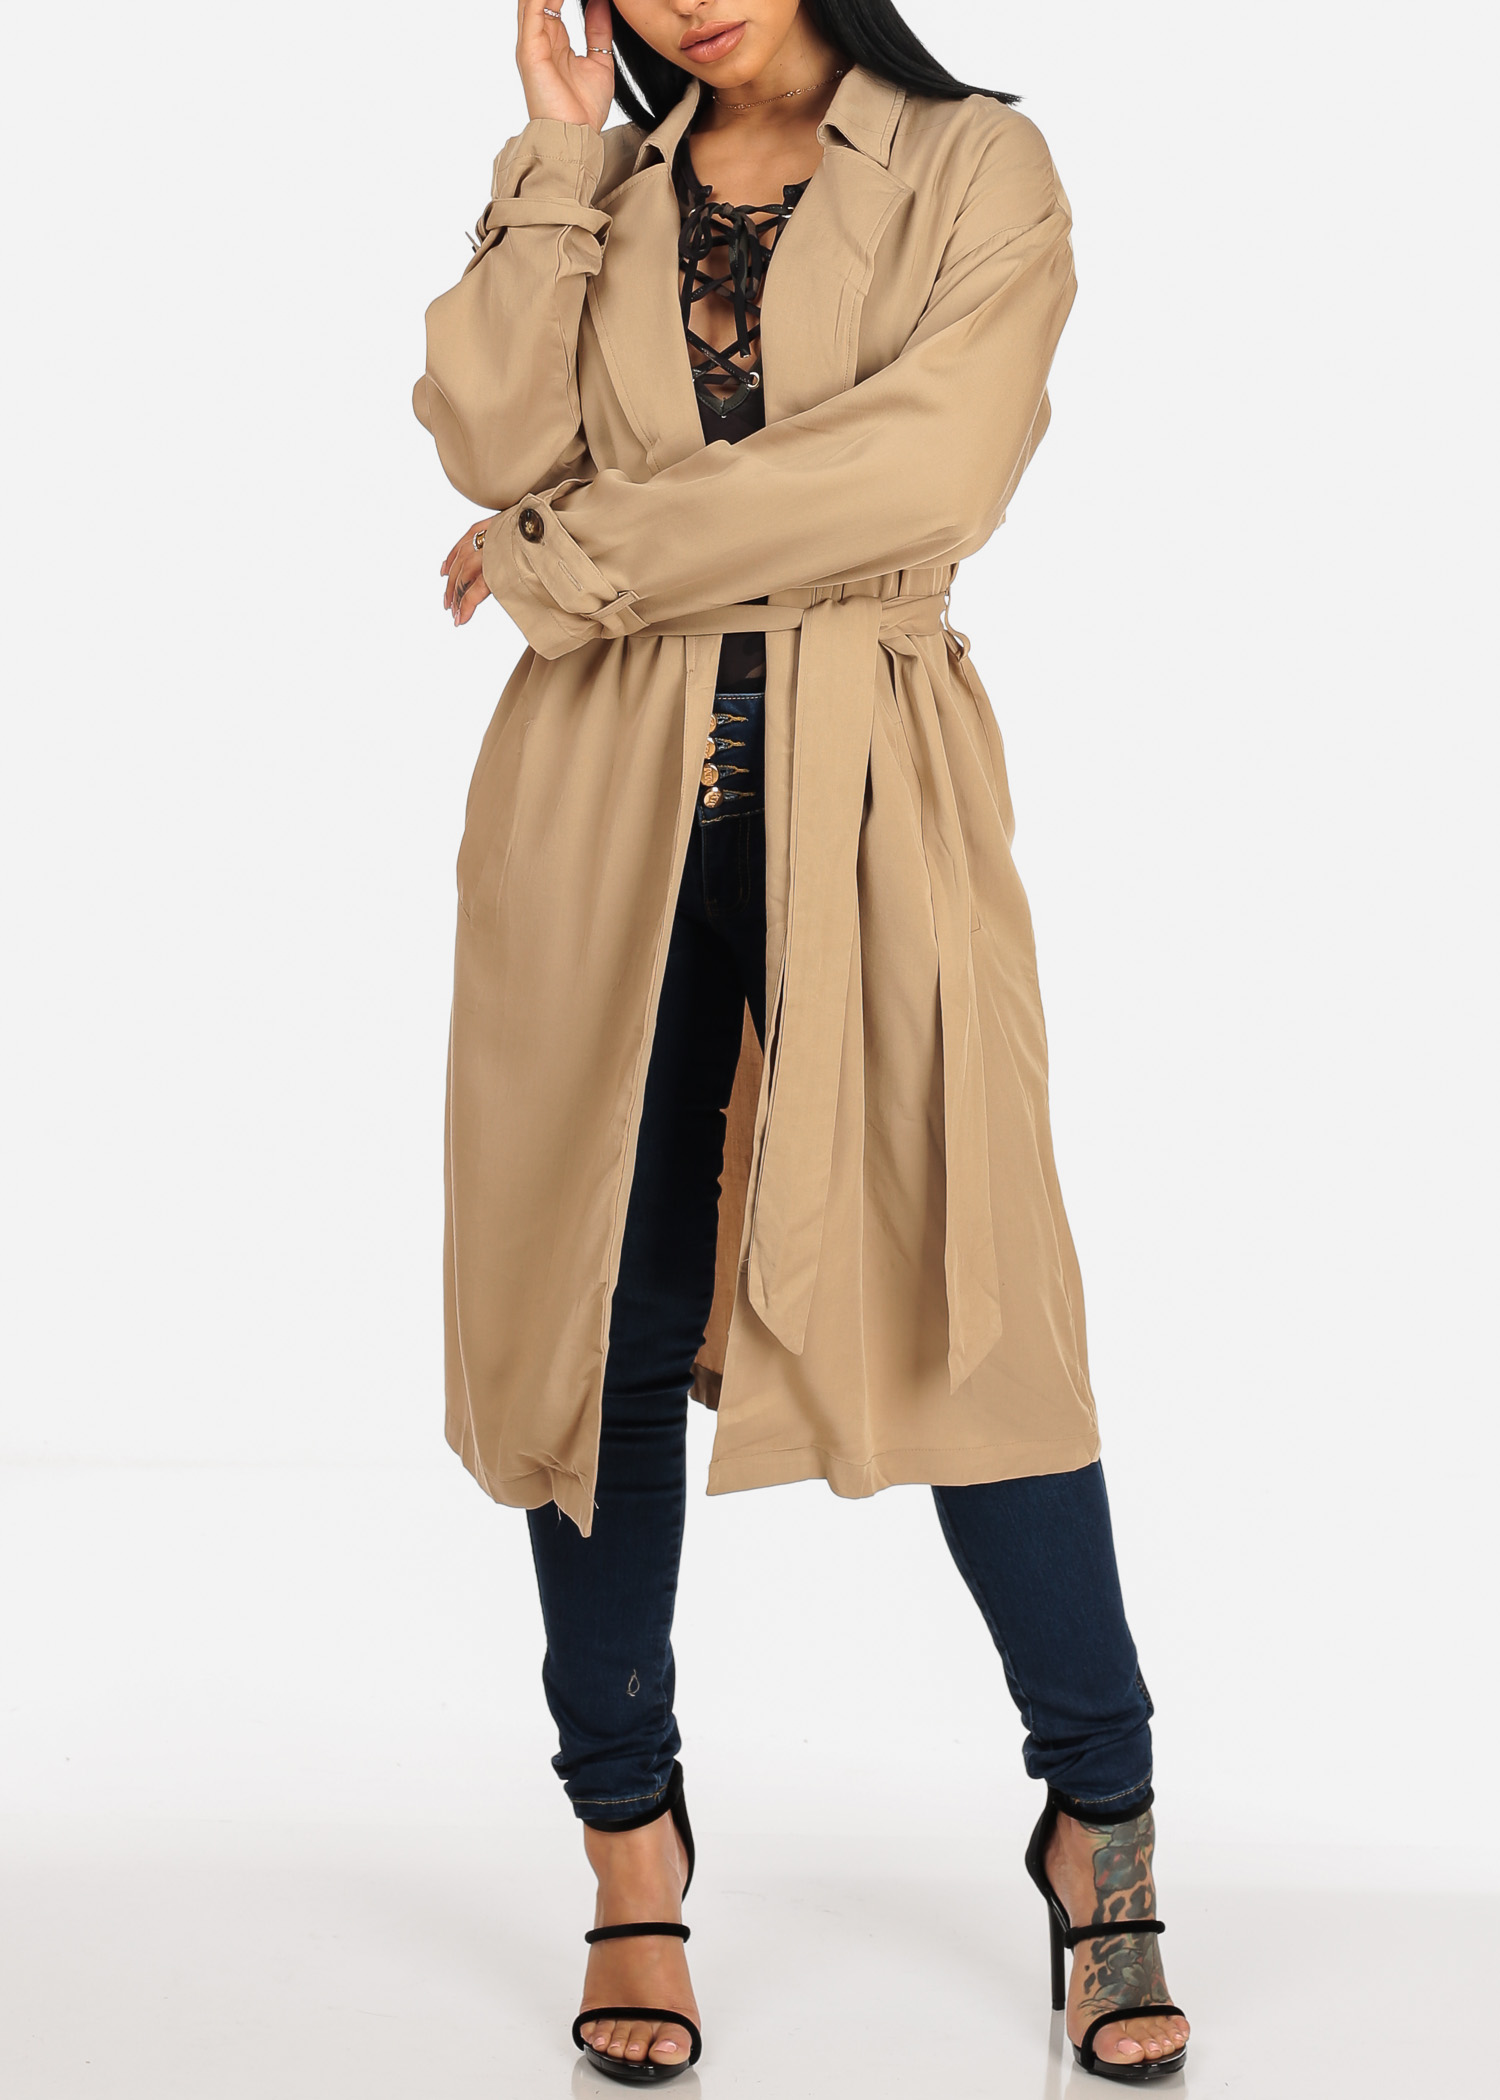 Stylish Lightweight Womens Juniors Solid Taupe Long Sleeve Tie Belt Trench Coat Jacket 40277S